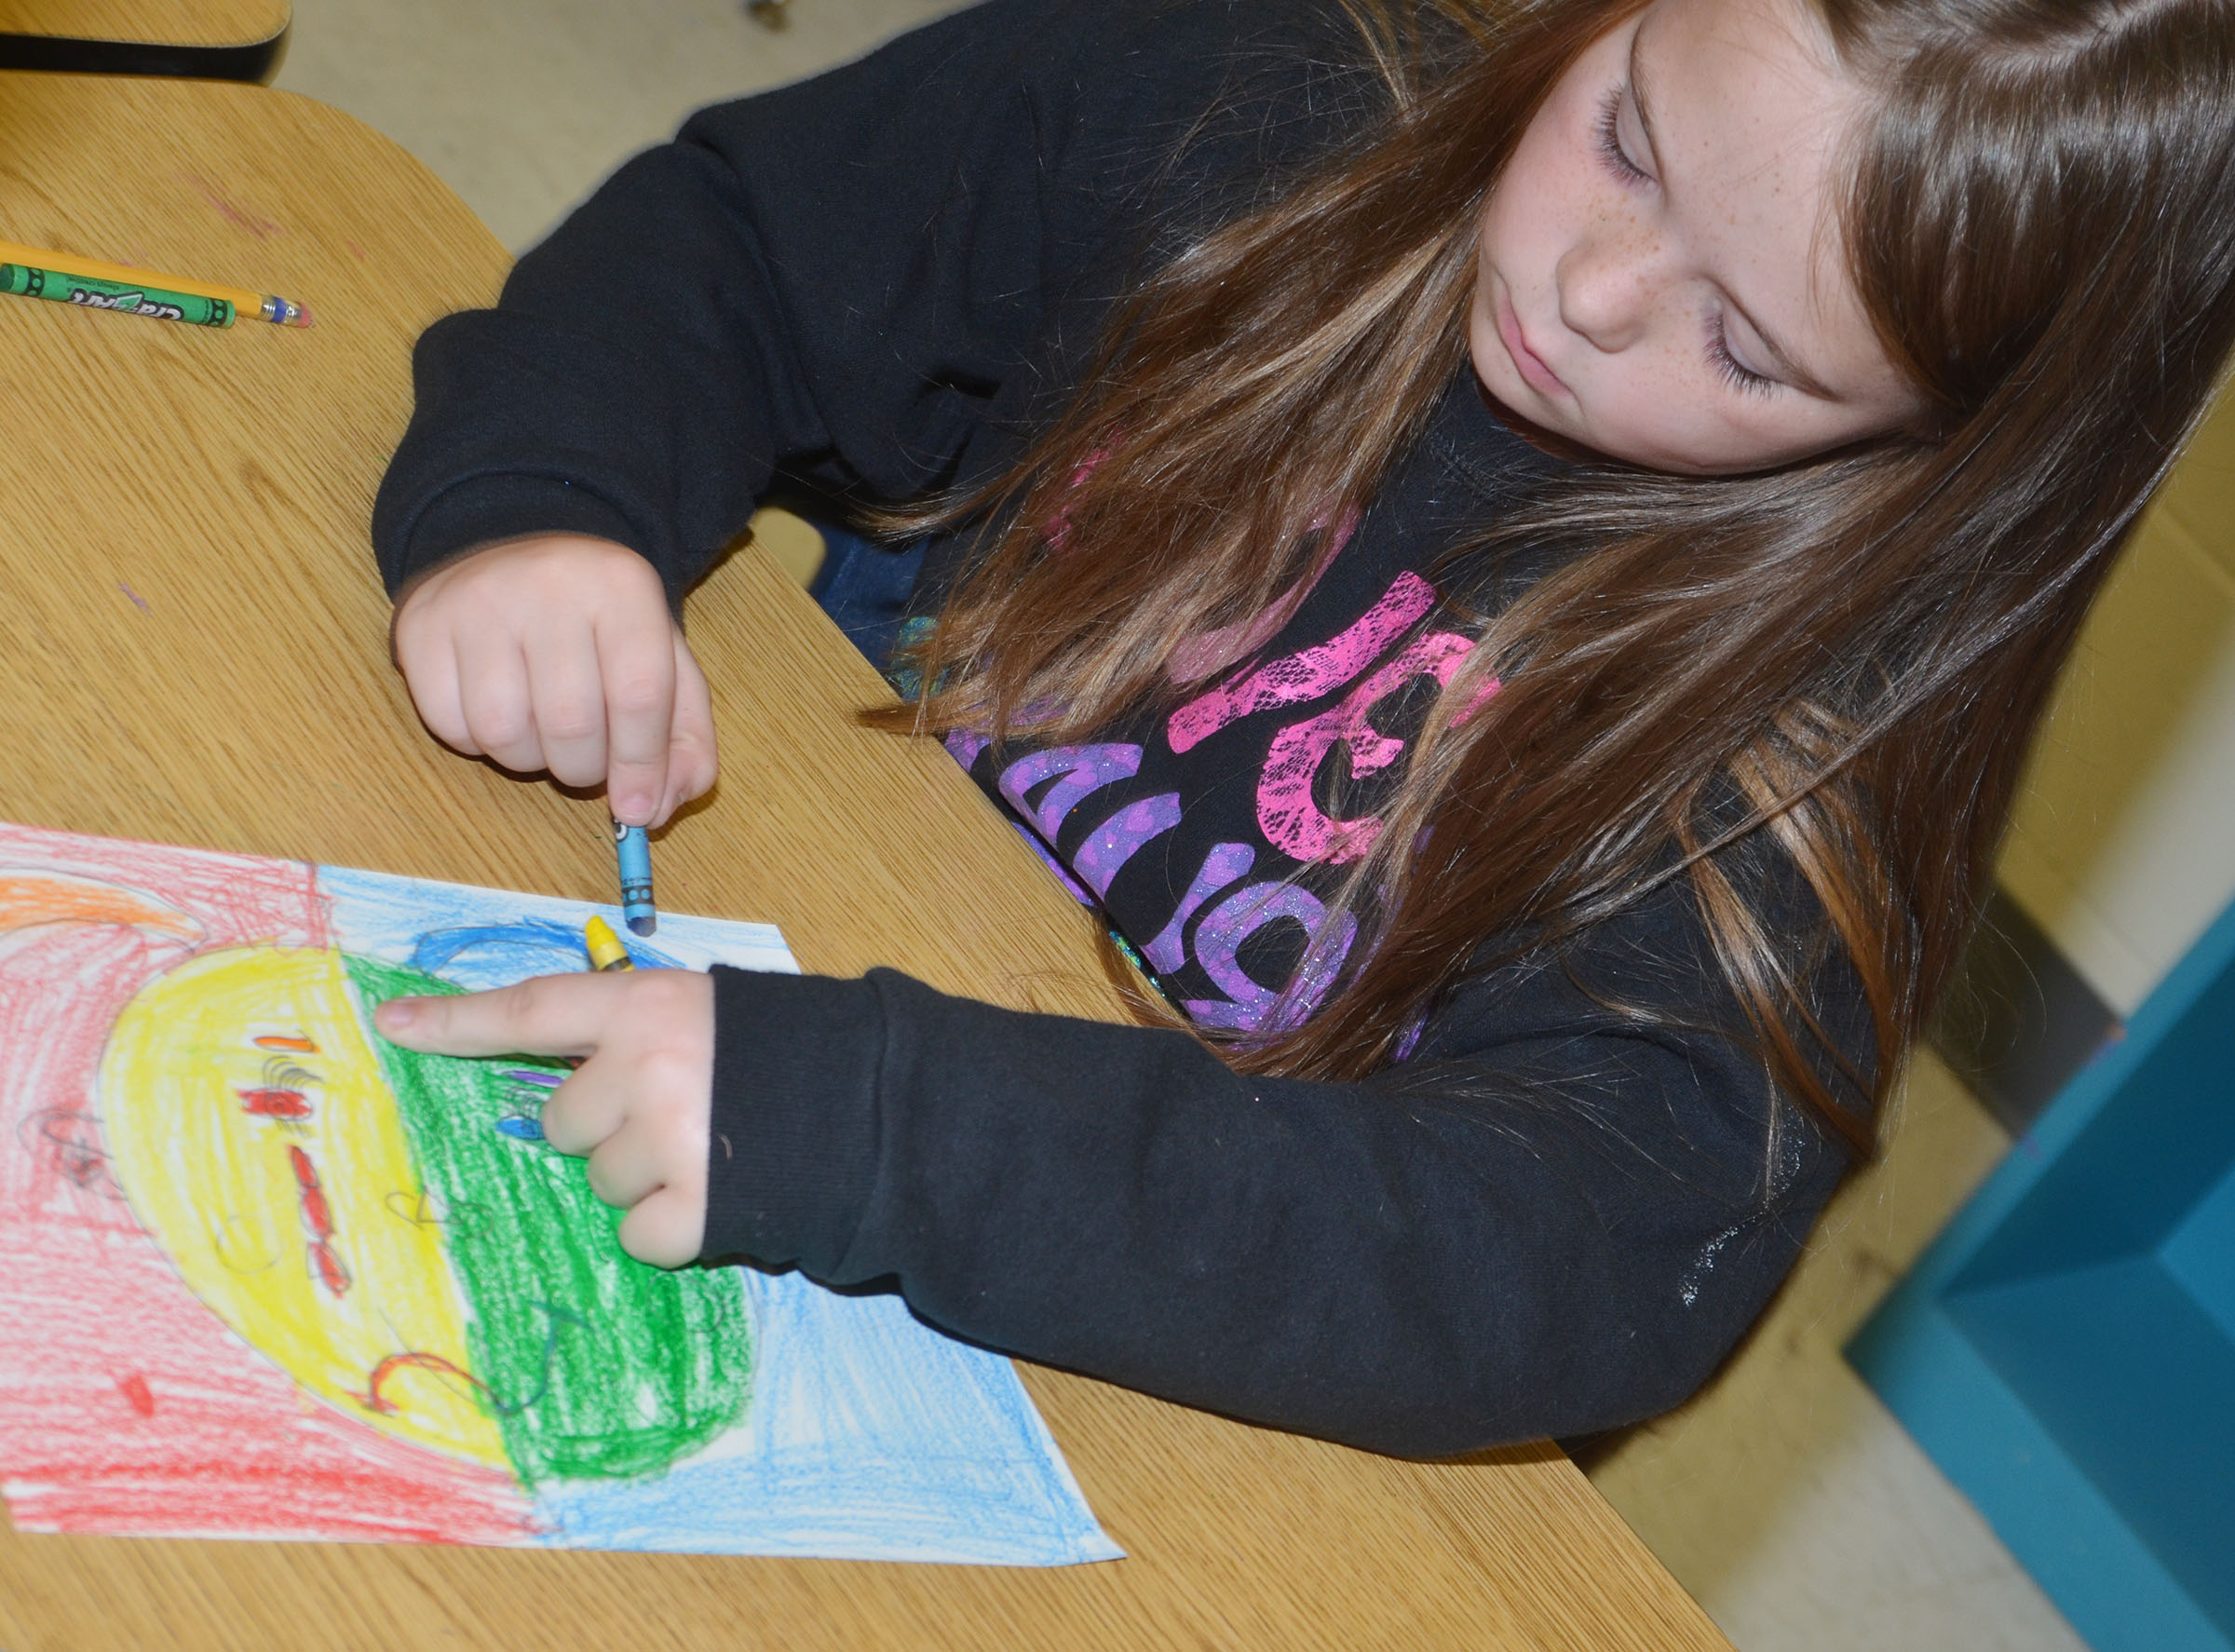 CES second-grader Cayleigh Underwood colors her warm and cool color face.